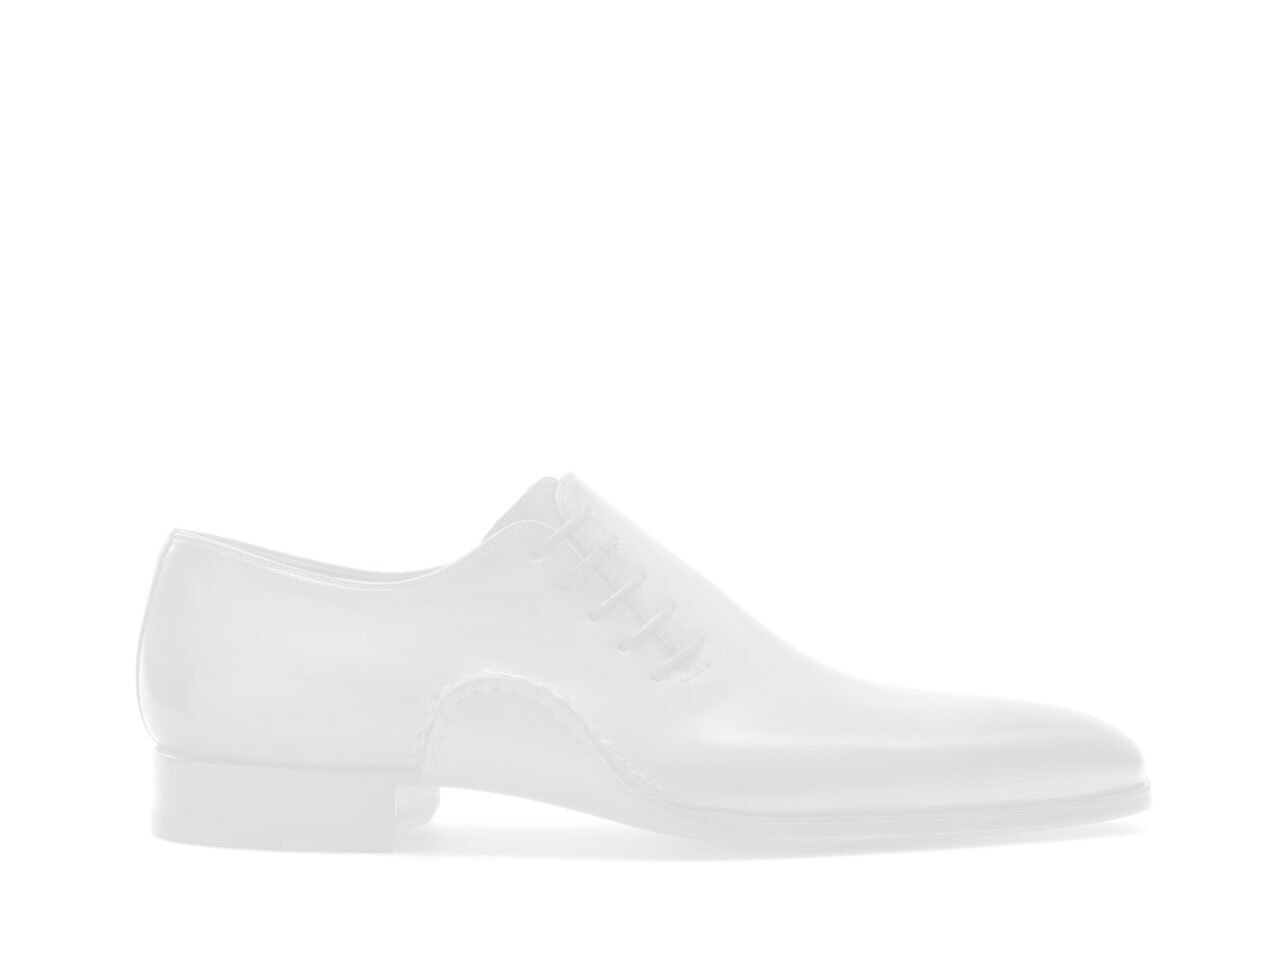 Pair of the Magnanni Volar White Men's Sneakers